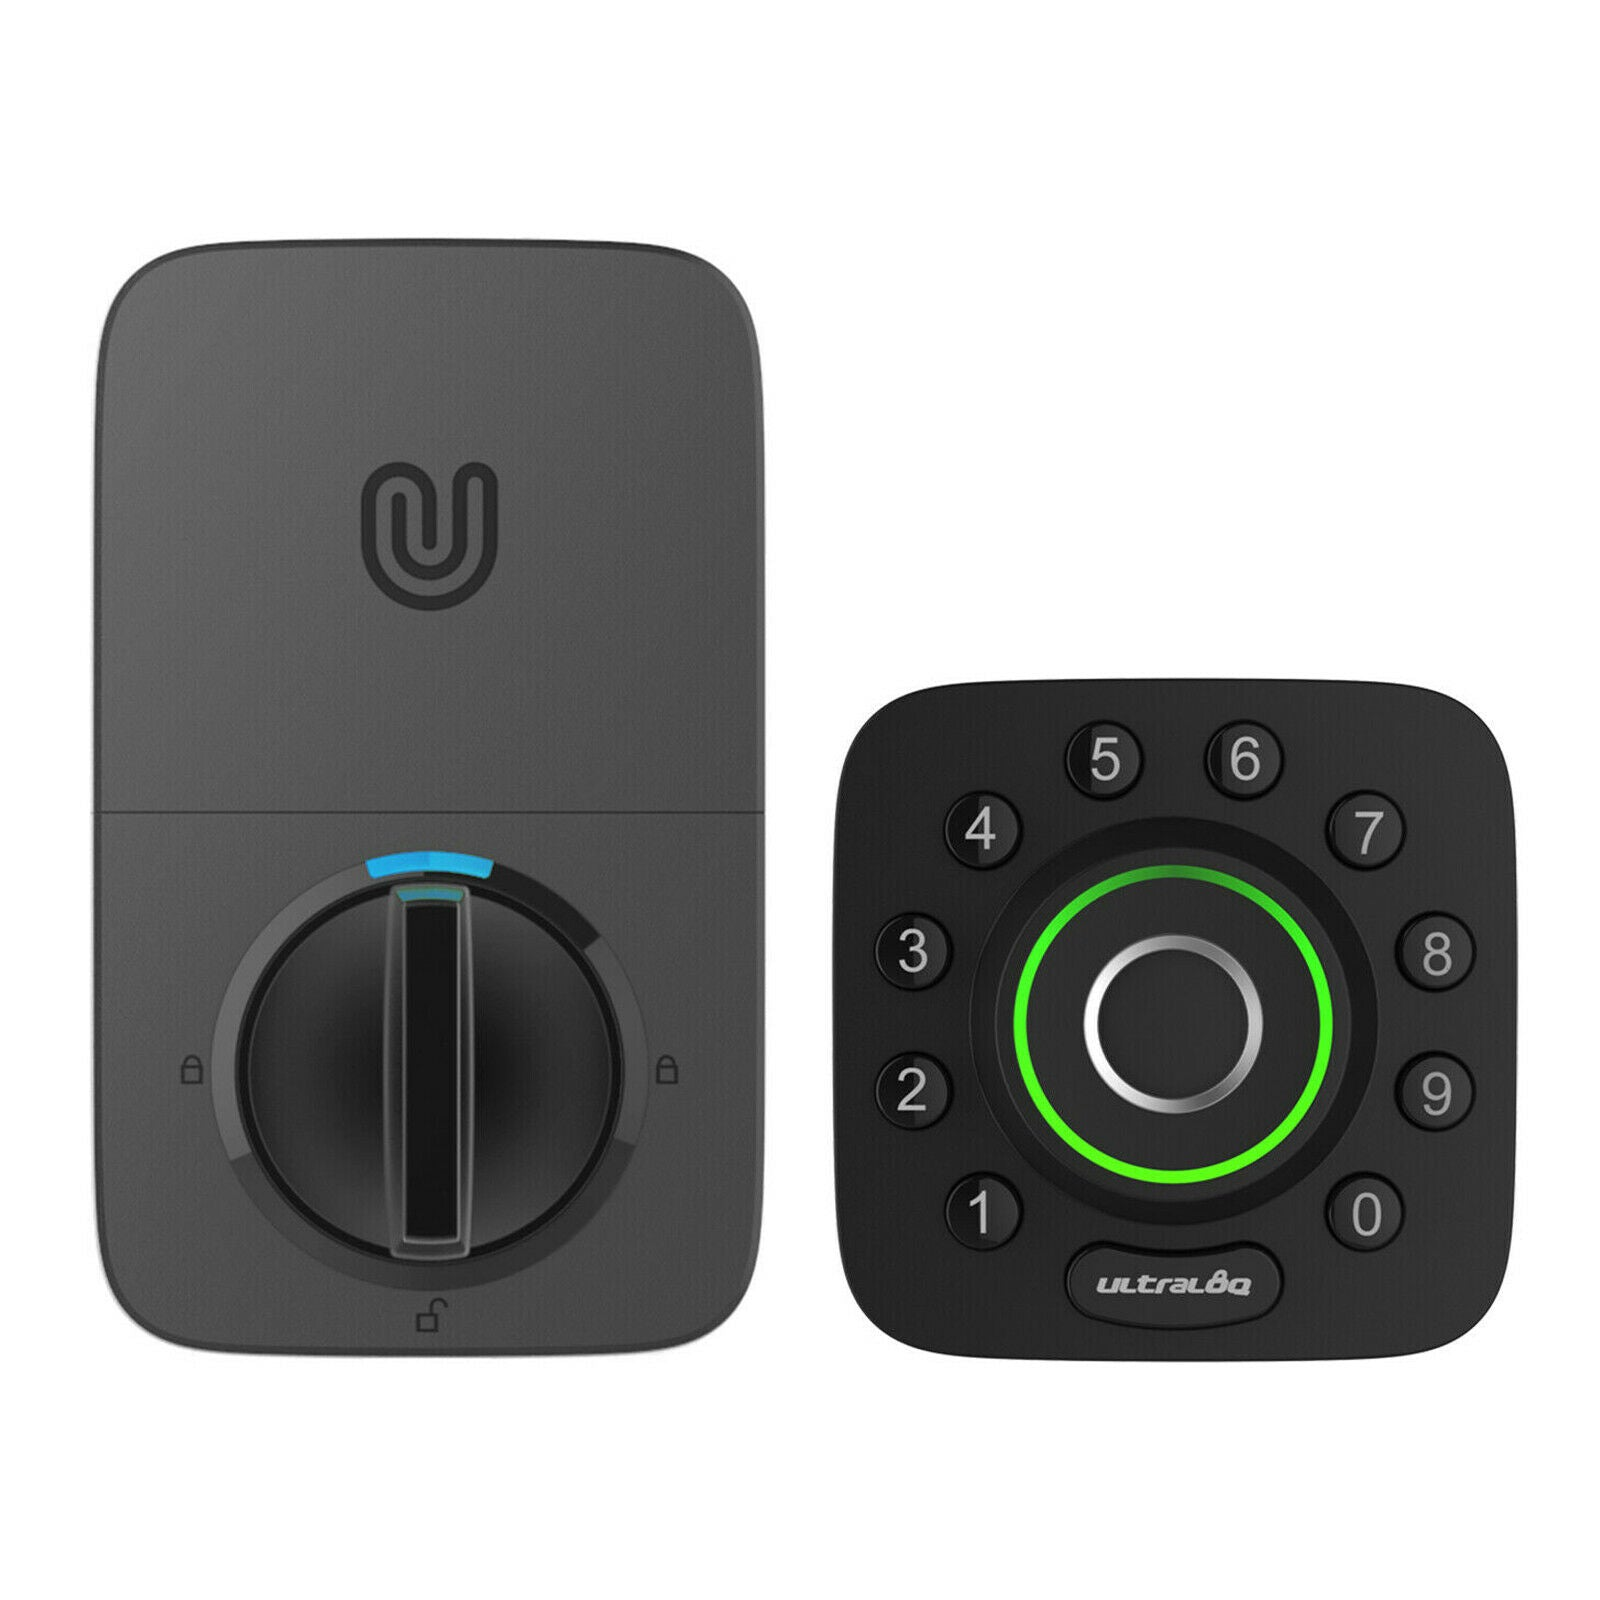 Ultraloq U‐Bolt Pro Smart Deadbolt + Wifi Bridge: Bluetooth Enabled Fingerprint and Keypad Smart Lock